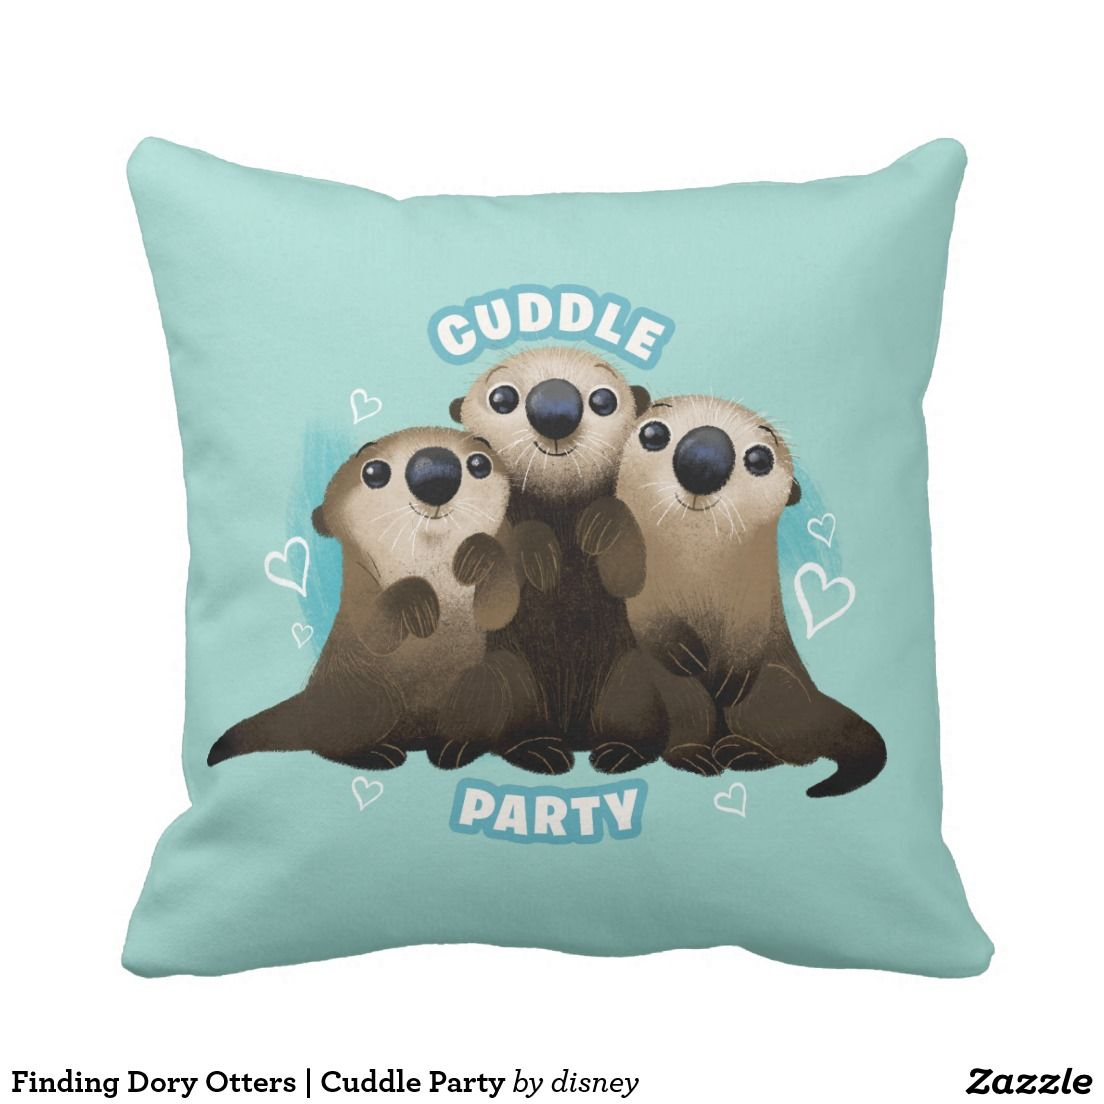 Finding Dory Otters | Cuddle Party Pillow.  Artwork designed by Disney. Price $25.44 per pillow